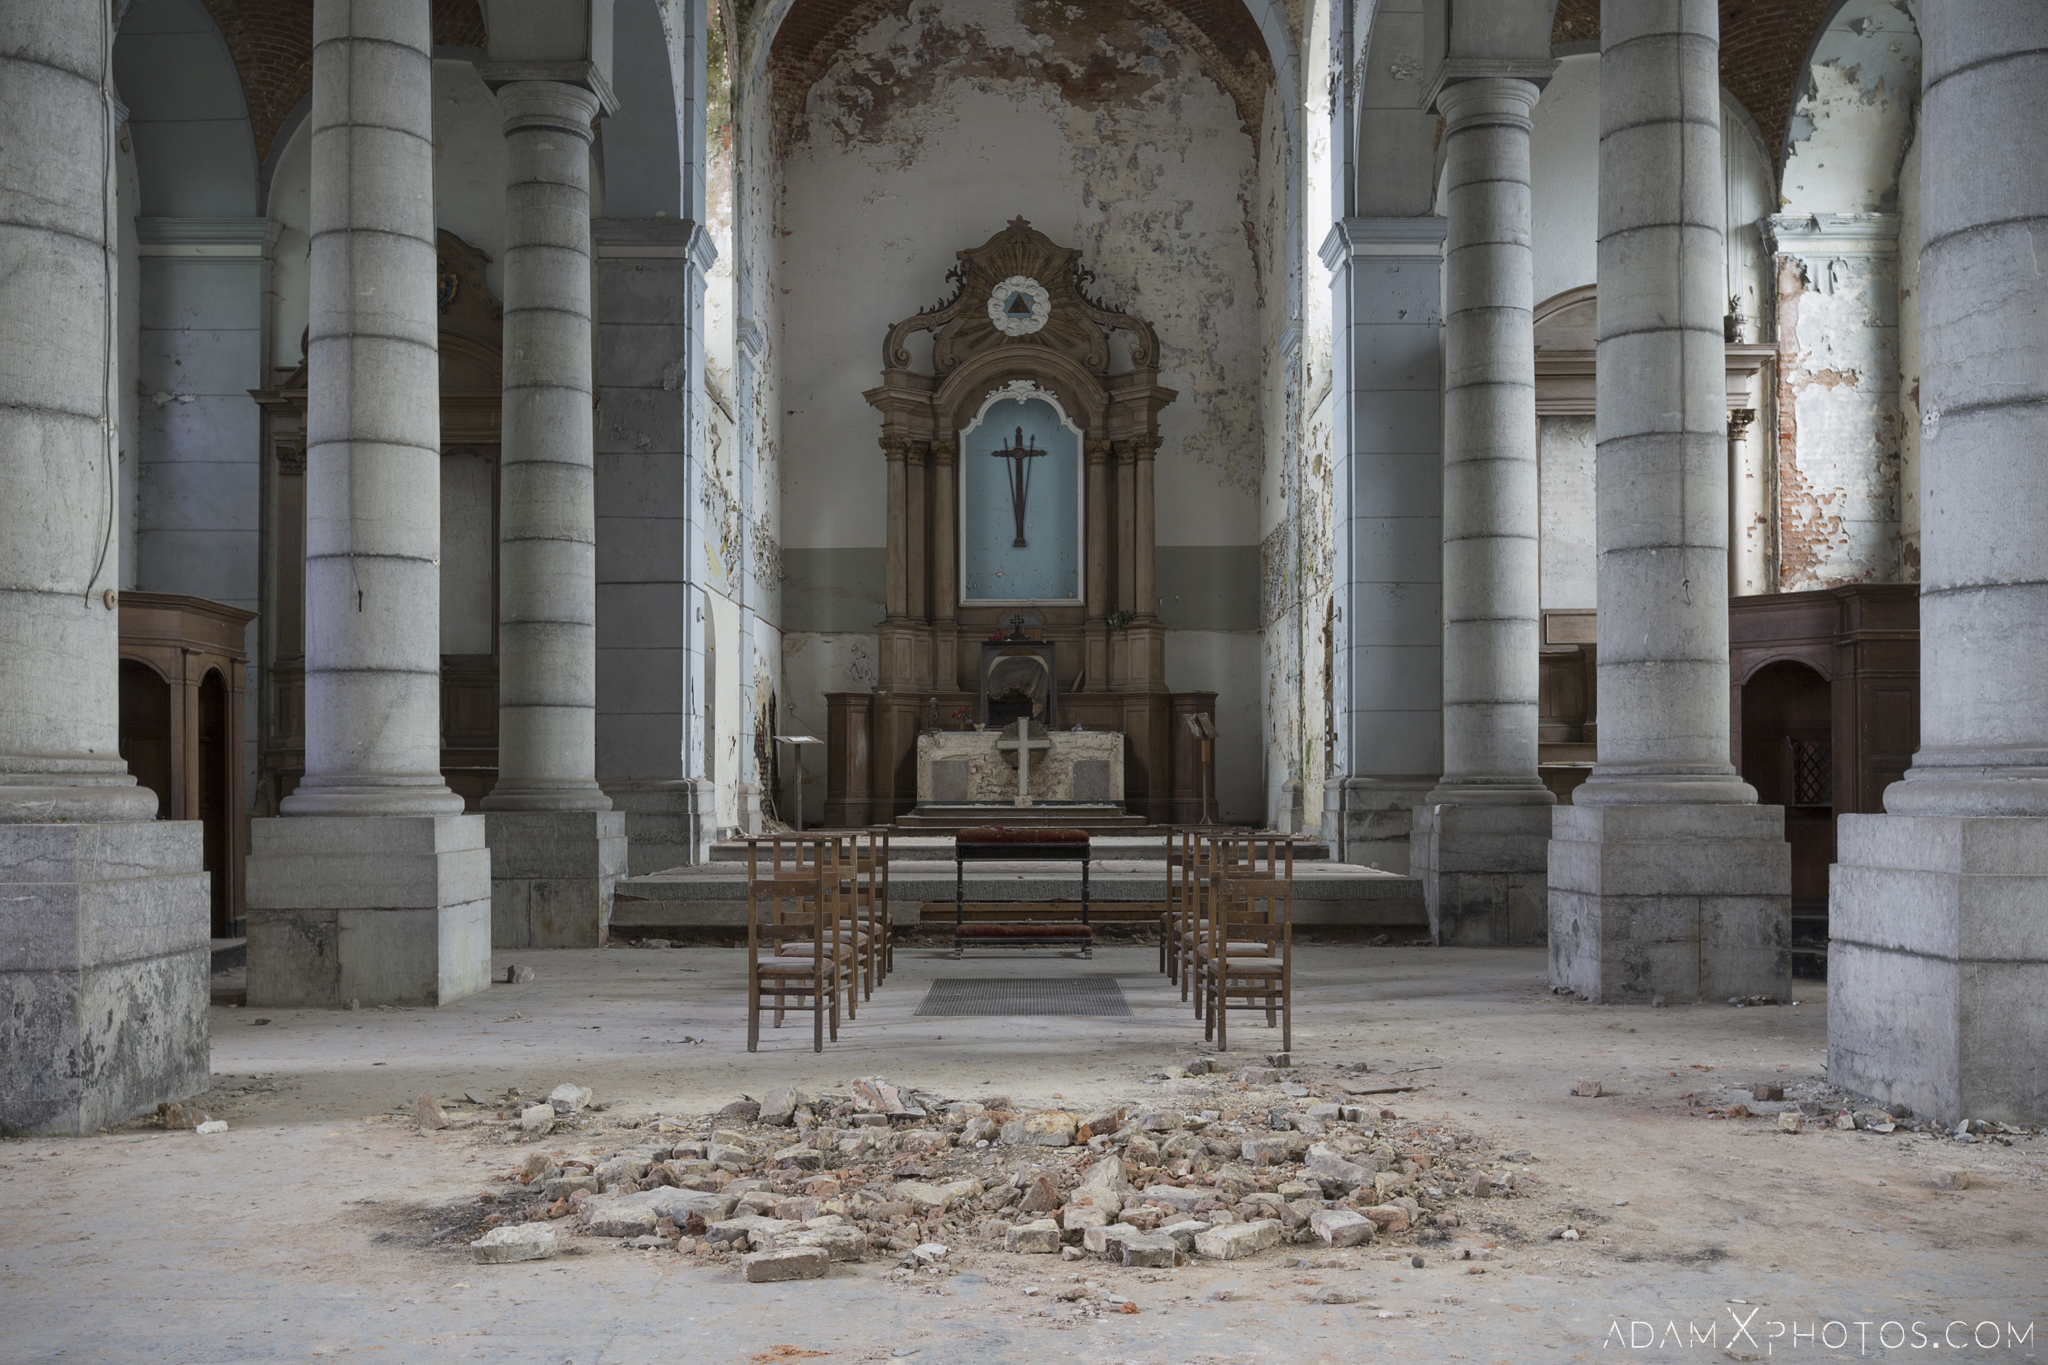 Altar L'église Saint-Pierre Church of Decay Grâce-Hollogne Liege Adam X Urban Exploration Belgium Access 2017 Abandoned decay lost forgotten derelict location creepy haunting eerie